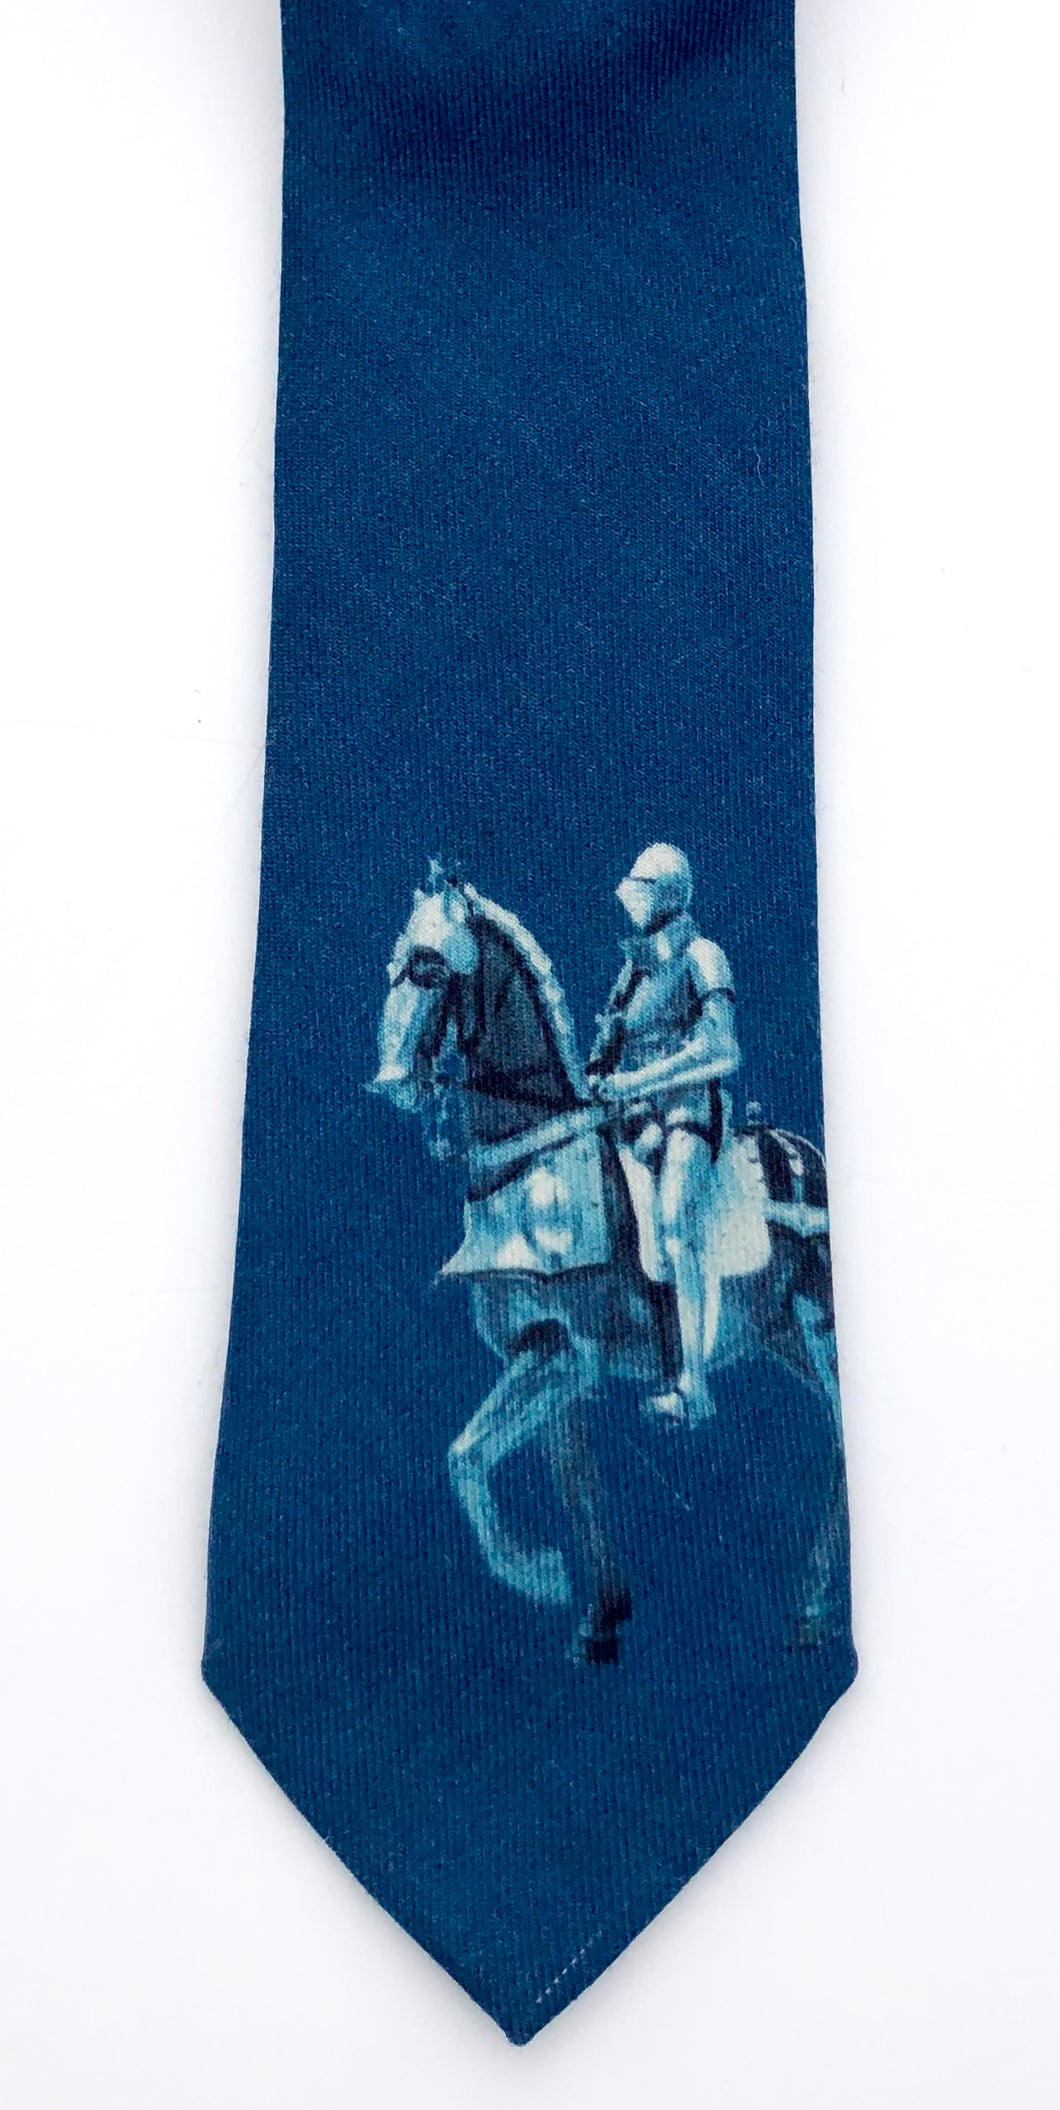 Armored Horse and Rider Tie